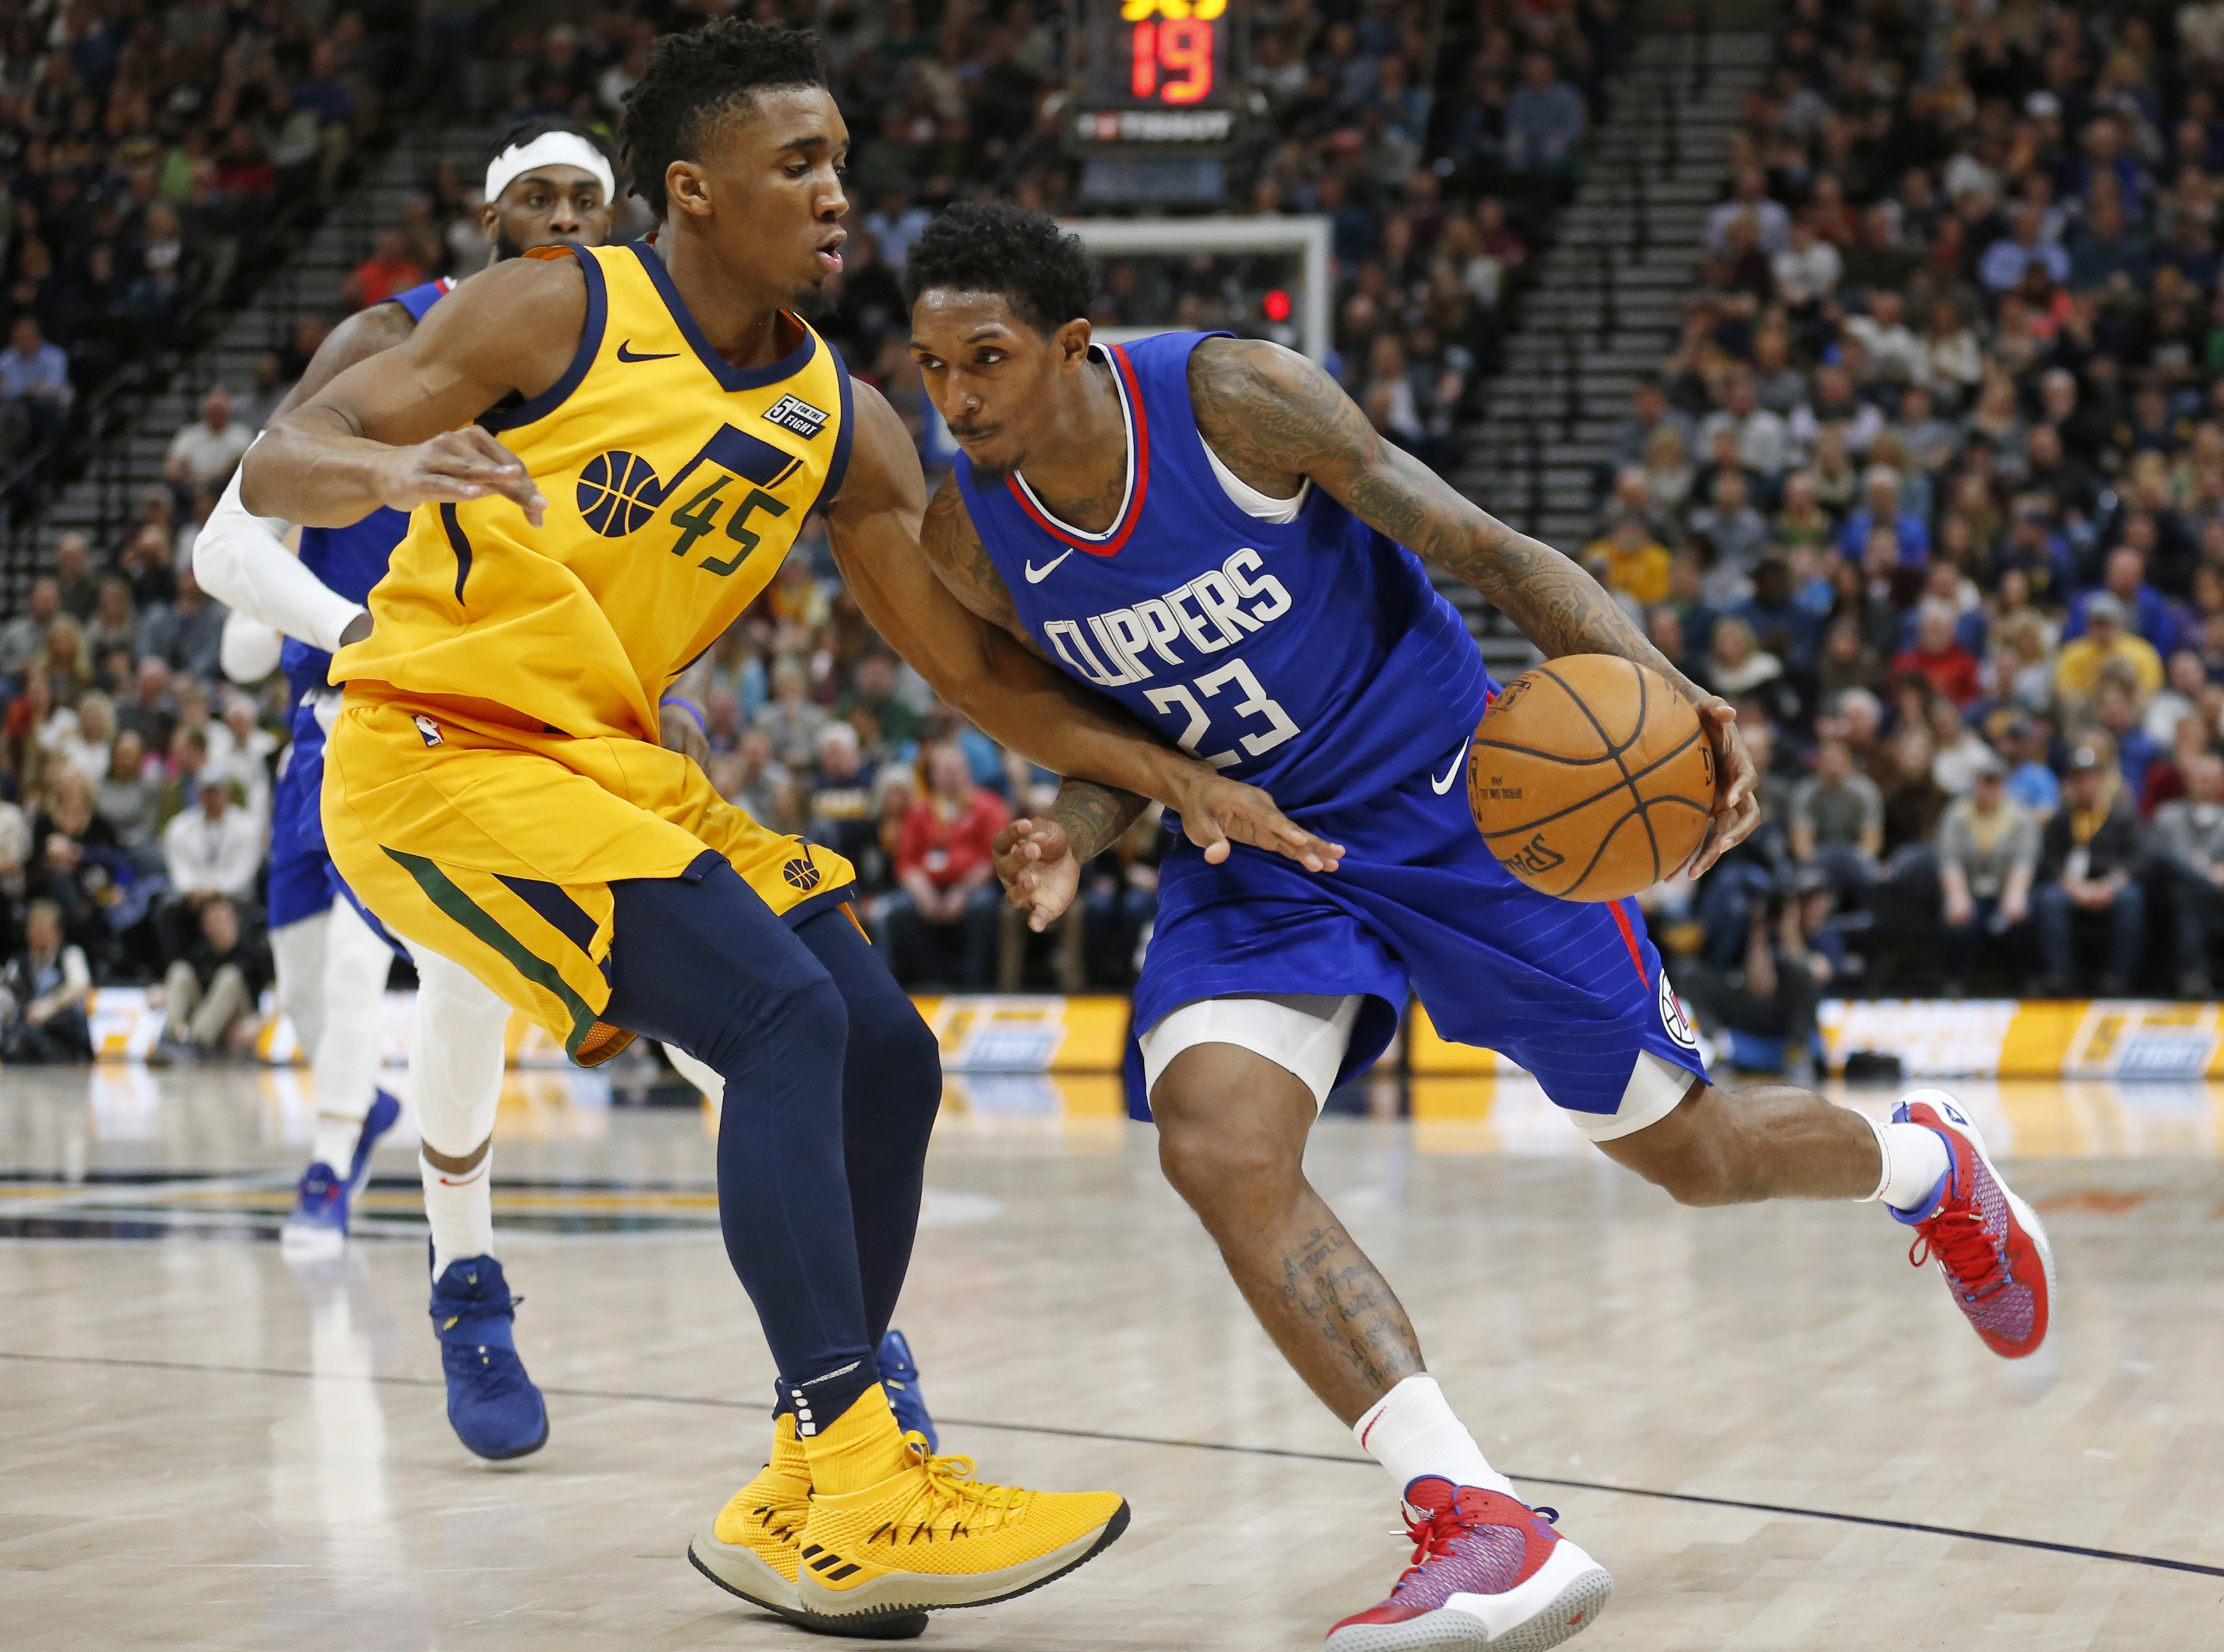 Utah Jazz guard Donovan Mitchell (45) guards Los Angeles Clippers guard Lou Williams (23) in the first half during an NBA basketball game Saturday, Jan. 20, 2018, in Salt Lake City.